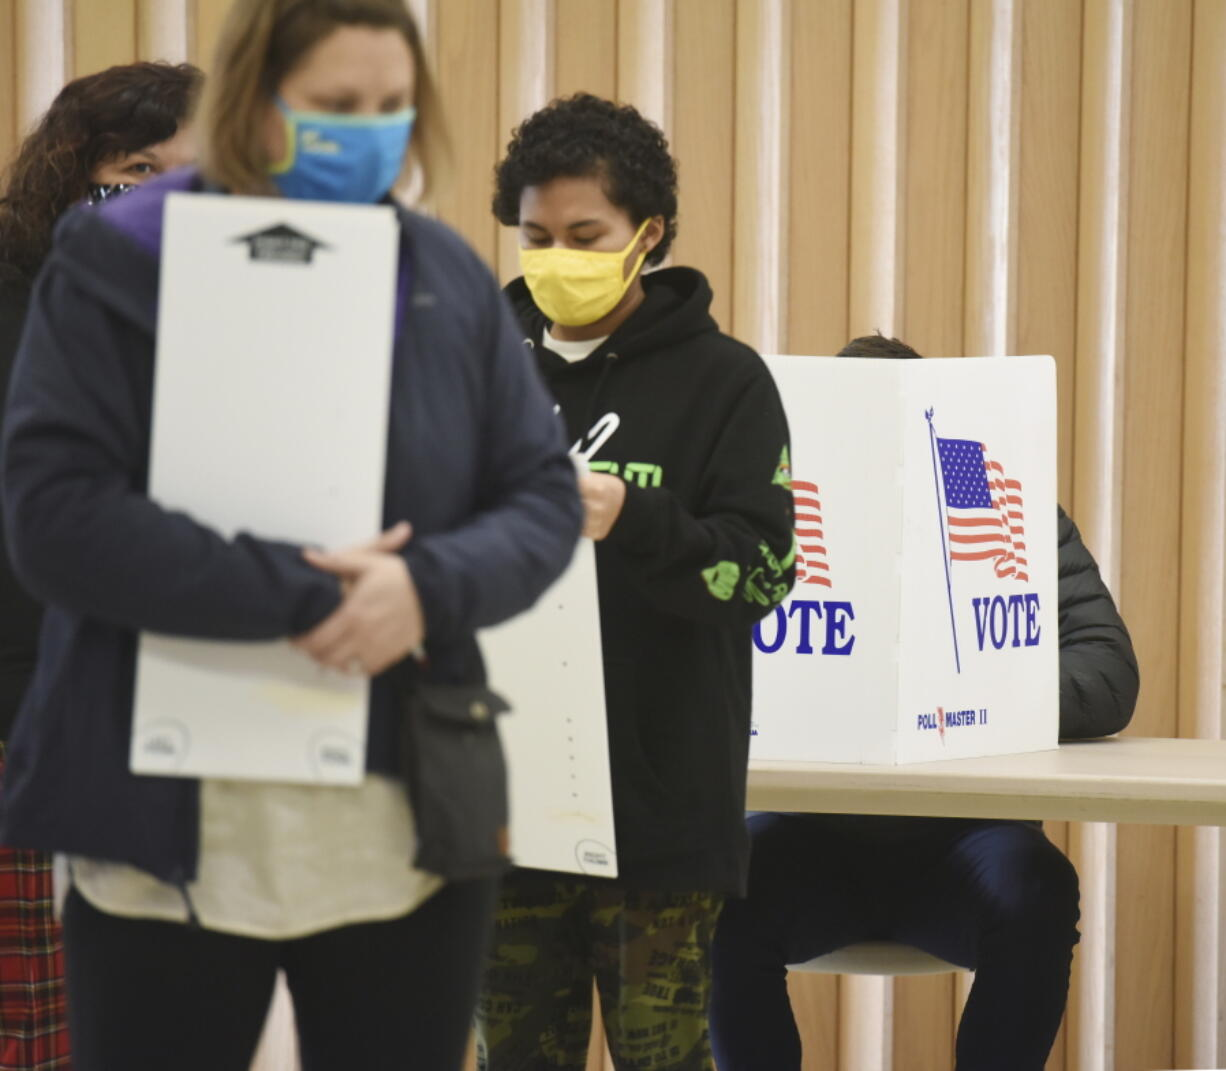 FILE - In this Nov. 3, 2020 file photo, residents wear masks as they vote at the Zion St. Joe United Church of Christ on Election Day, in St. Joseph, Mich. The leaders of three-dozen major Michigan-based companies, including General Motors and Ford, announced Tuesday, April 13, 2021, their opposition to Republican-sponsored election bills that would make it harder to vote in Michigan and other states.